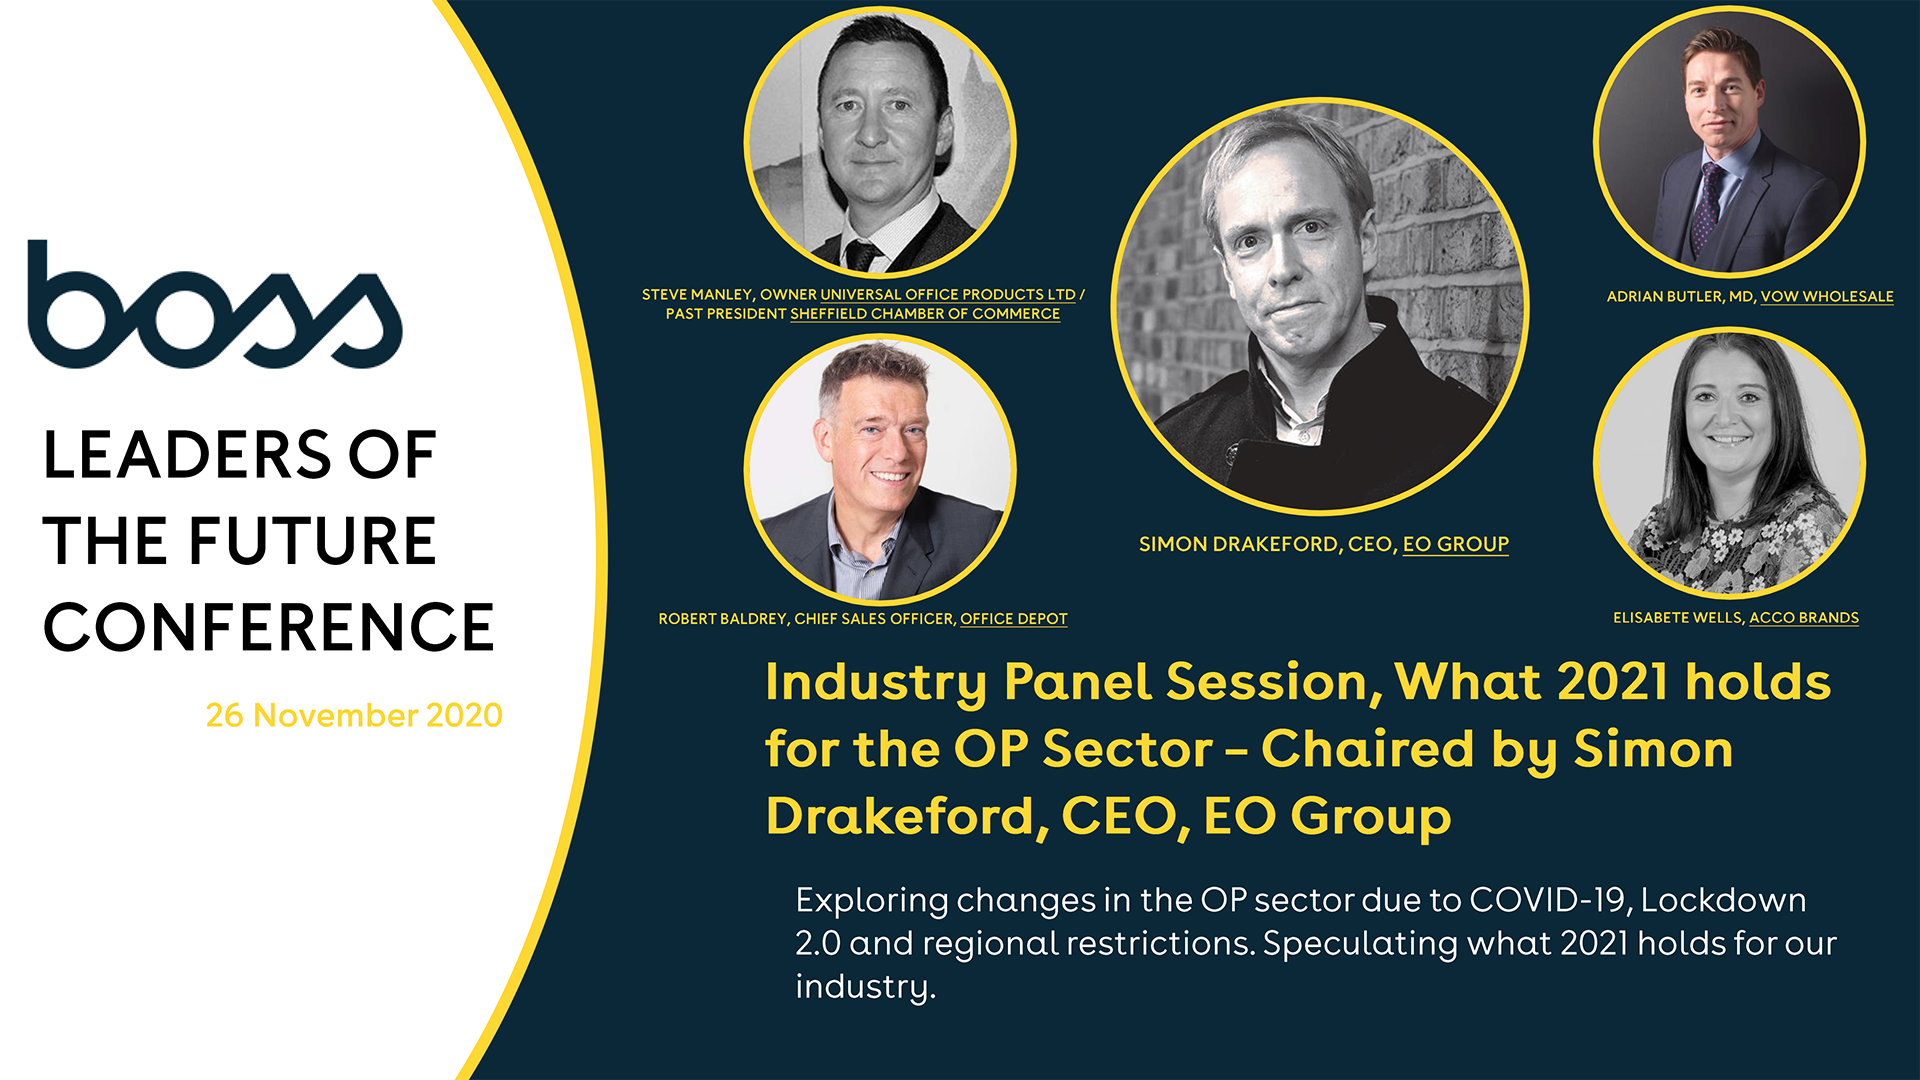 LOTF 2020: Industry Panel Session, What 2021 holds for the OP Sector – Chaired by Simon Drakeford, CEO, EO Group